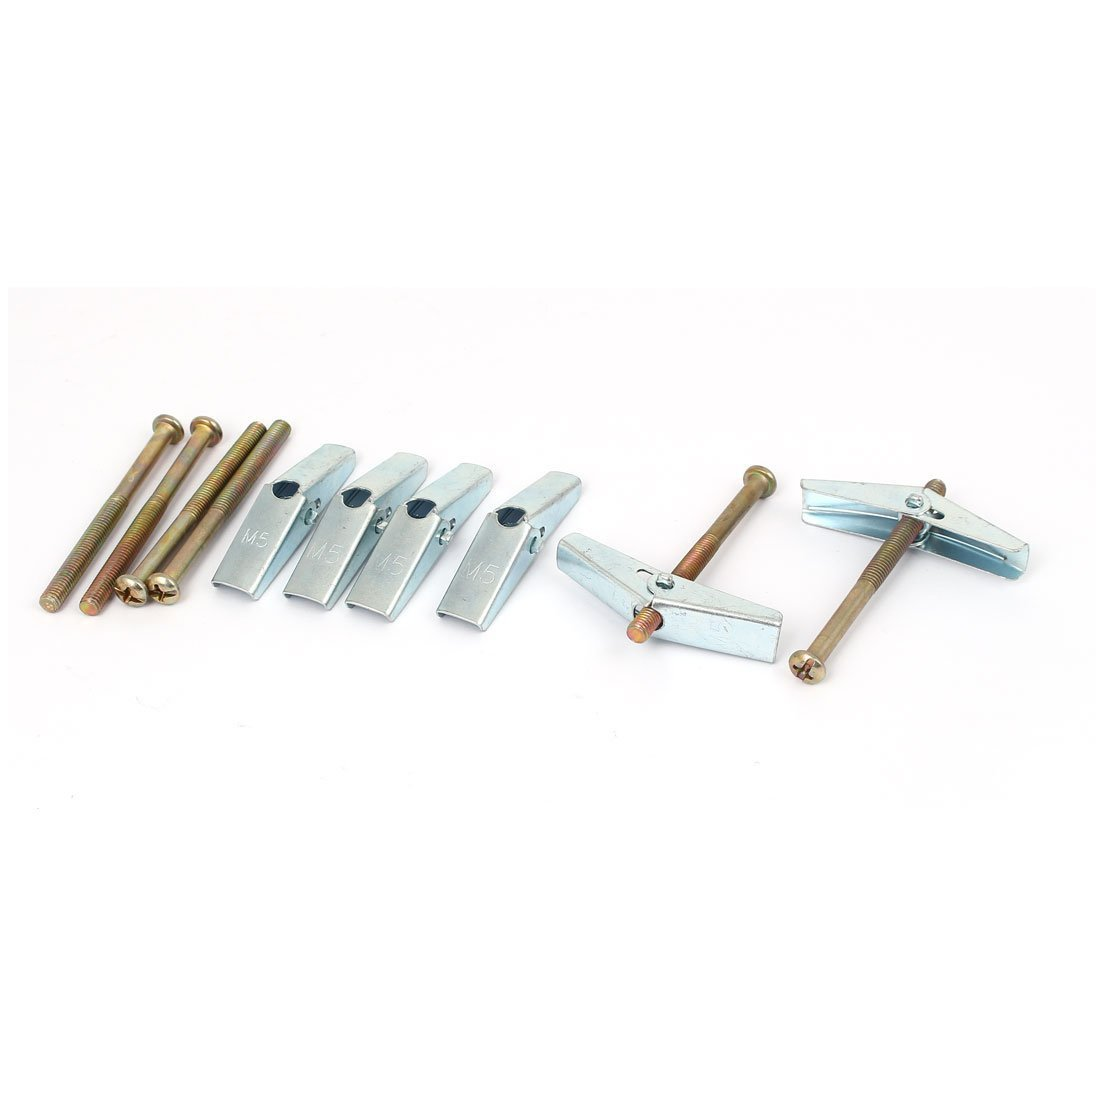 sourcingmap 5mm x 60mm Thread Spring Toggle Hollow Plasterboard Cavity Wall Anchor Bolt 6pcs SYNCTEA030326